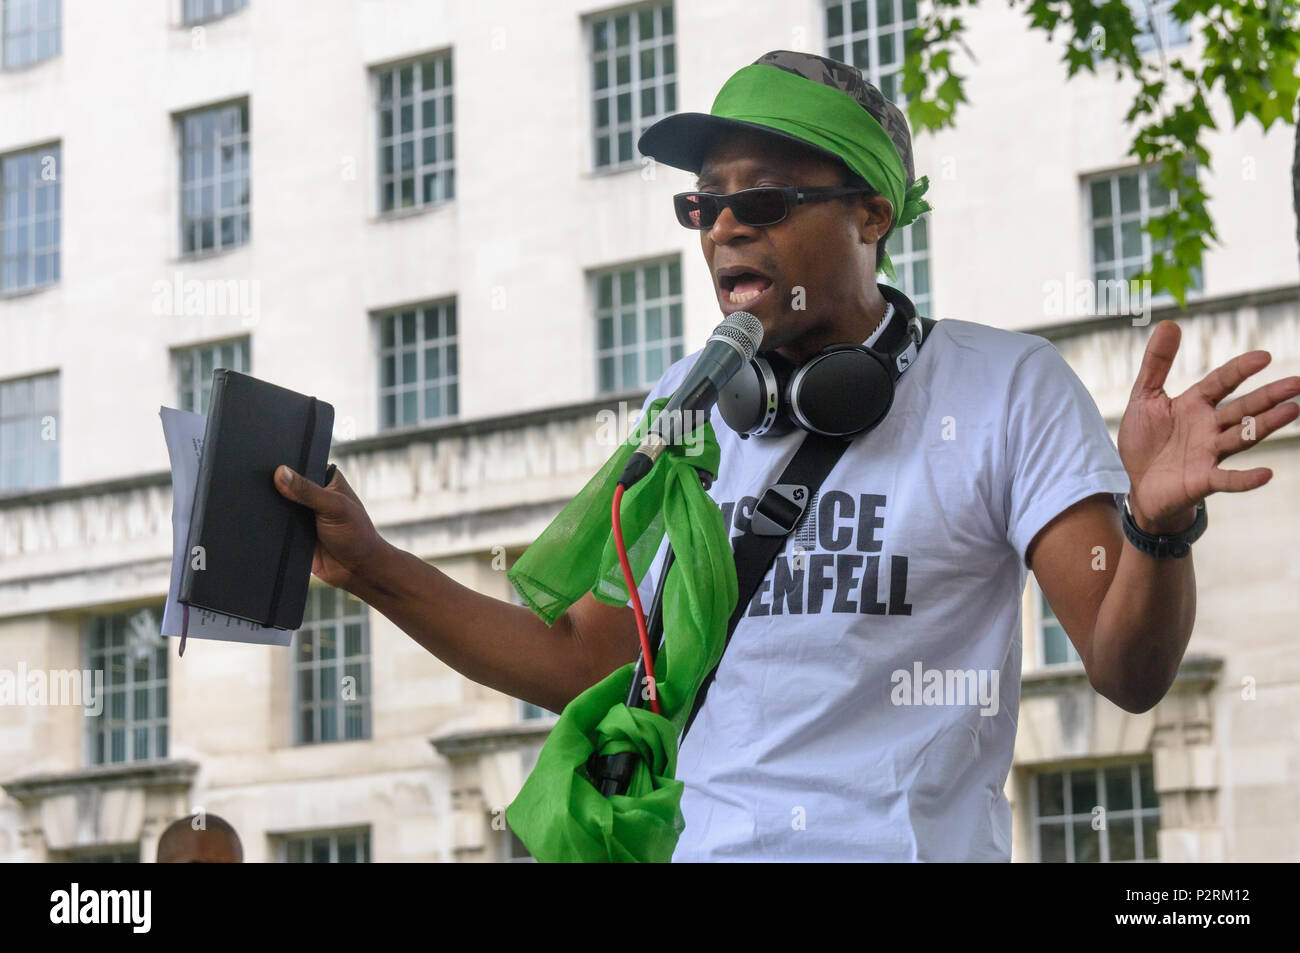 London, UK. 16th June 2018. Barrister and Stand Up to Racism national officer Brian Richardson speaks to the  large crowd at Downing St showing solidarity with the 72 killed and the survivors of the Grenfell fire a year ago at a protest organised by Justice4Grenfell and the FBU (Fire Brigades Union.) After some speeches they marched to the Home Office for a brief protest before returning to Downing St for more speeches. Speakers complained of the many promises made by Theresa May which have been broken, despite her promise all survivors would be rehoused in 3 weeks, a year later 50% of survivo - Stock Image